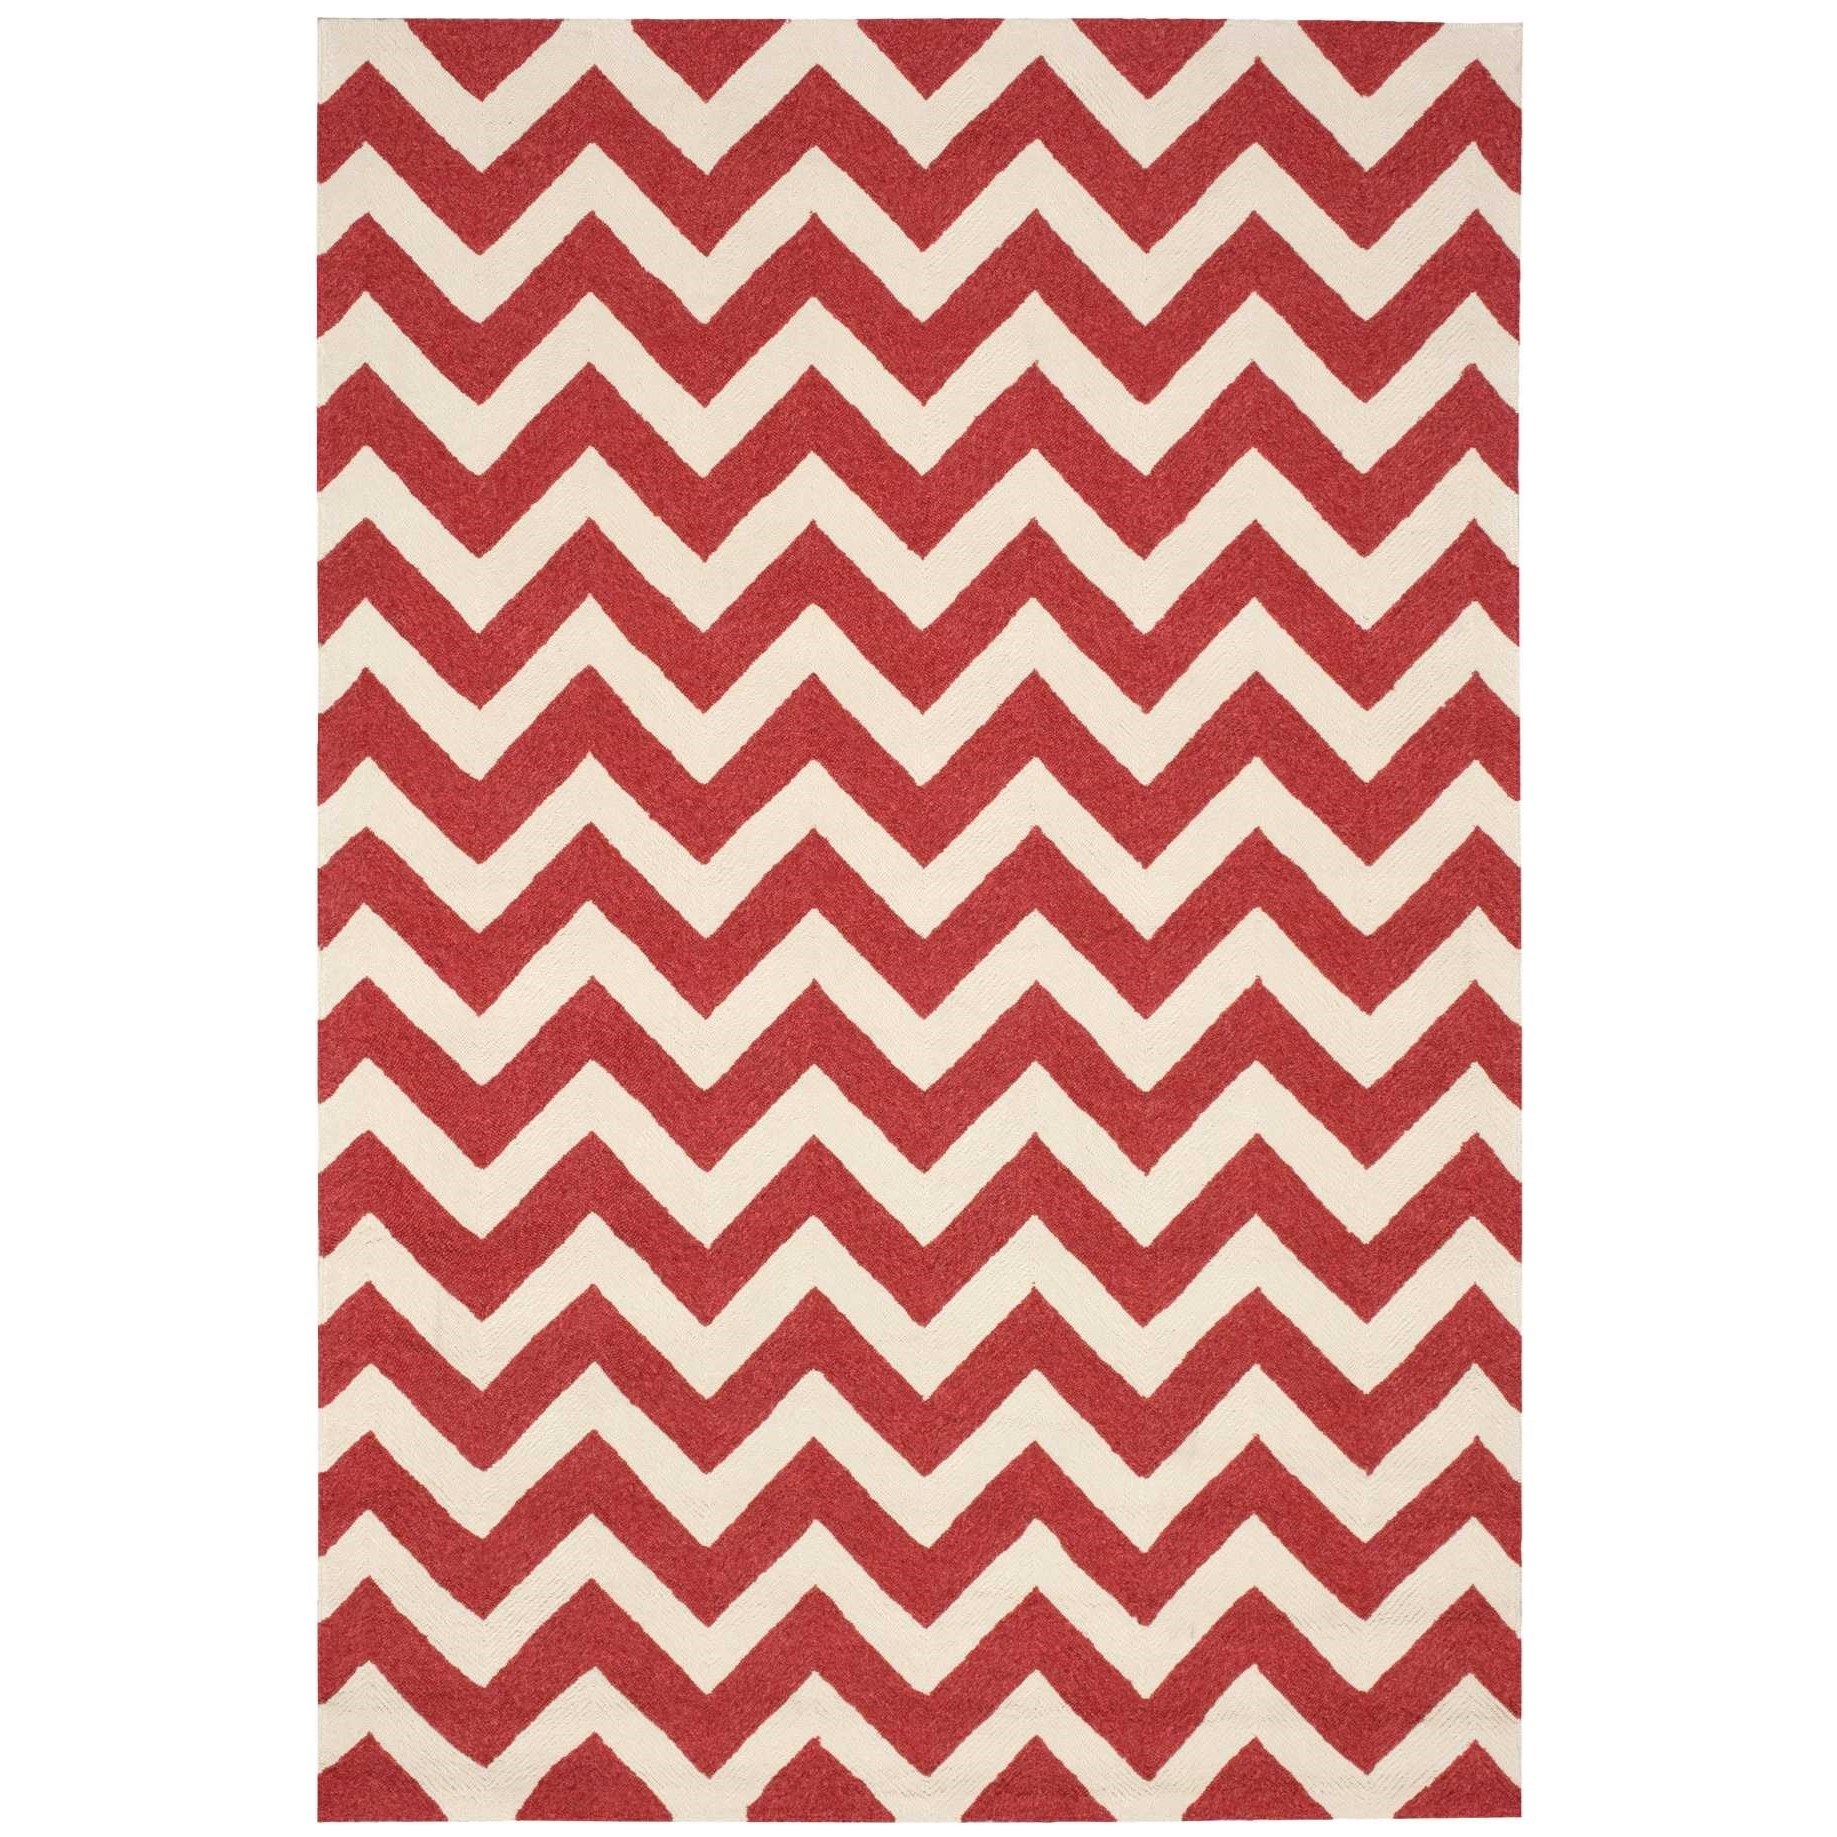 """Portico 5' x 7'6"""" Red Rectangle Rug by Nourison at Home Collections Furniture"""